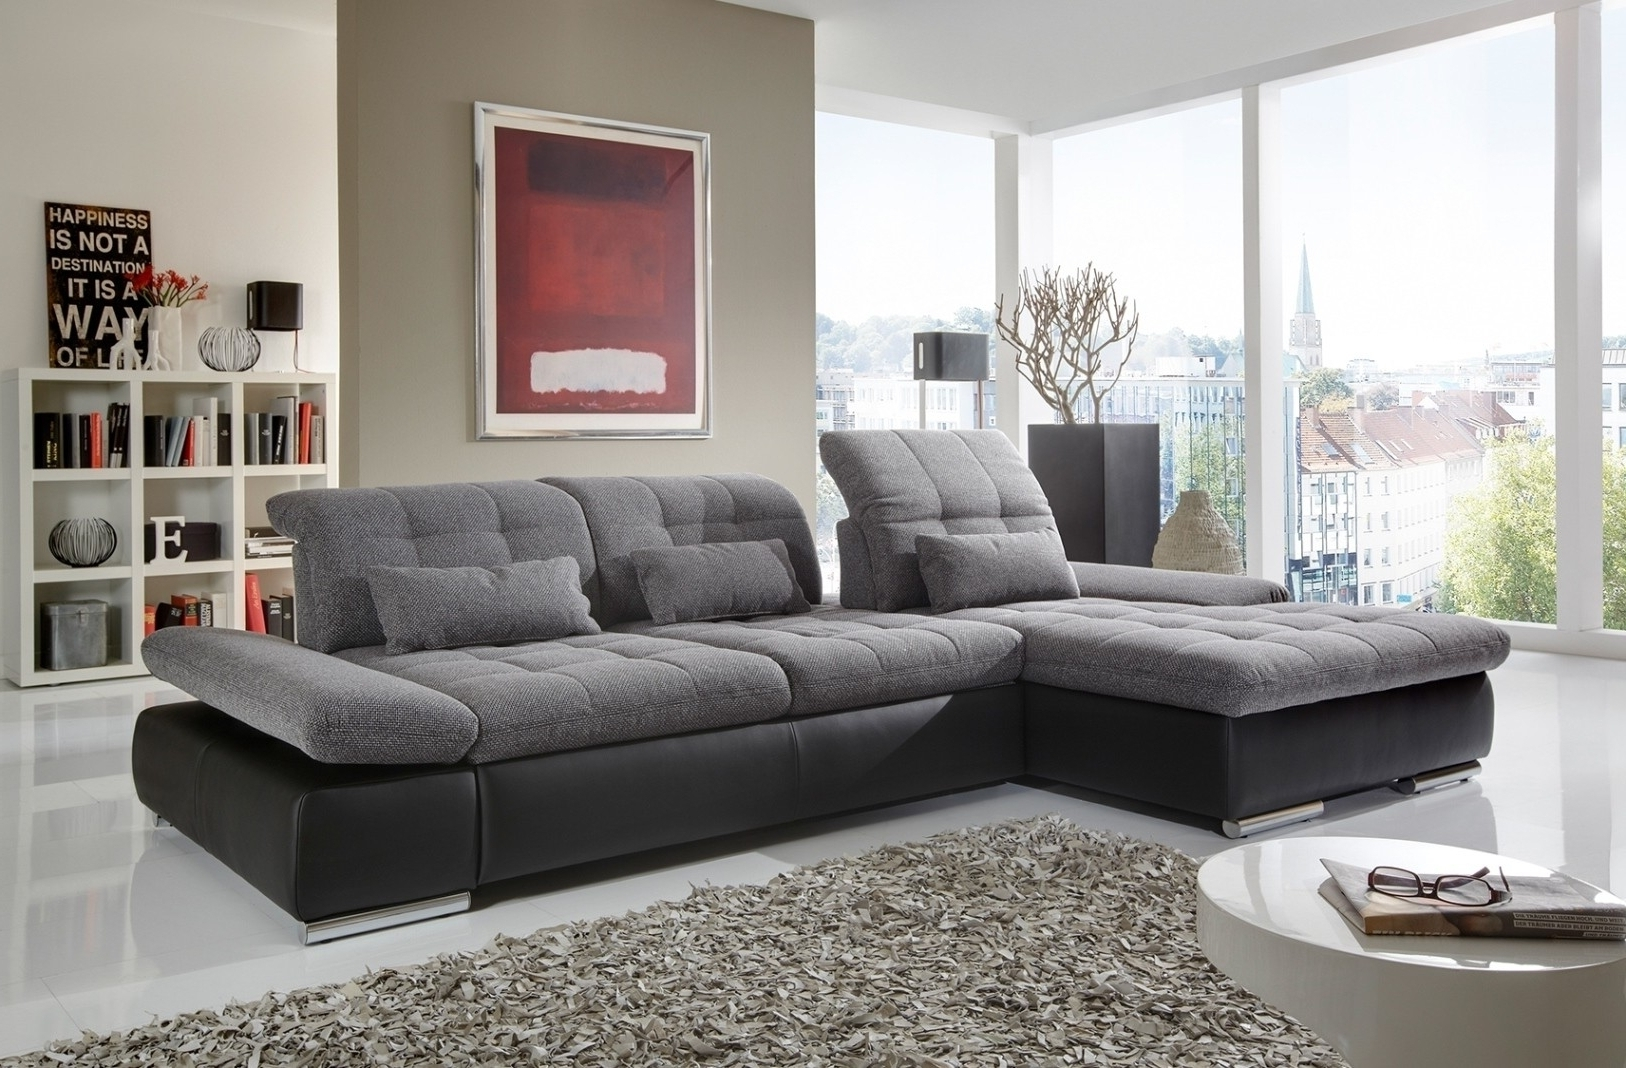 Top 20 Of Trinidad And Tobago Sectional Sofas Intended For Trinidad And Tobago Sectional Sofas (Image 6 of 10)